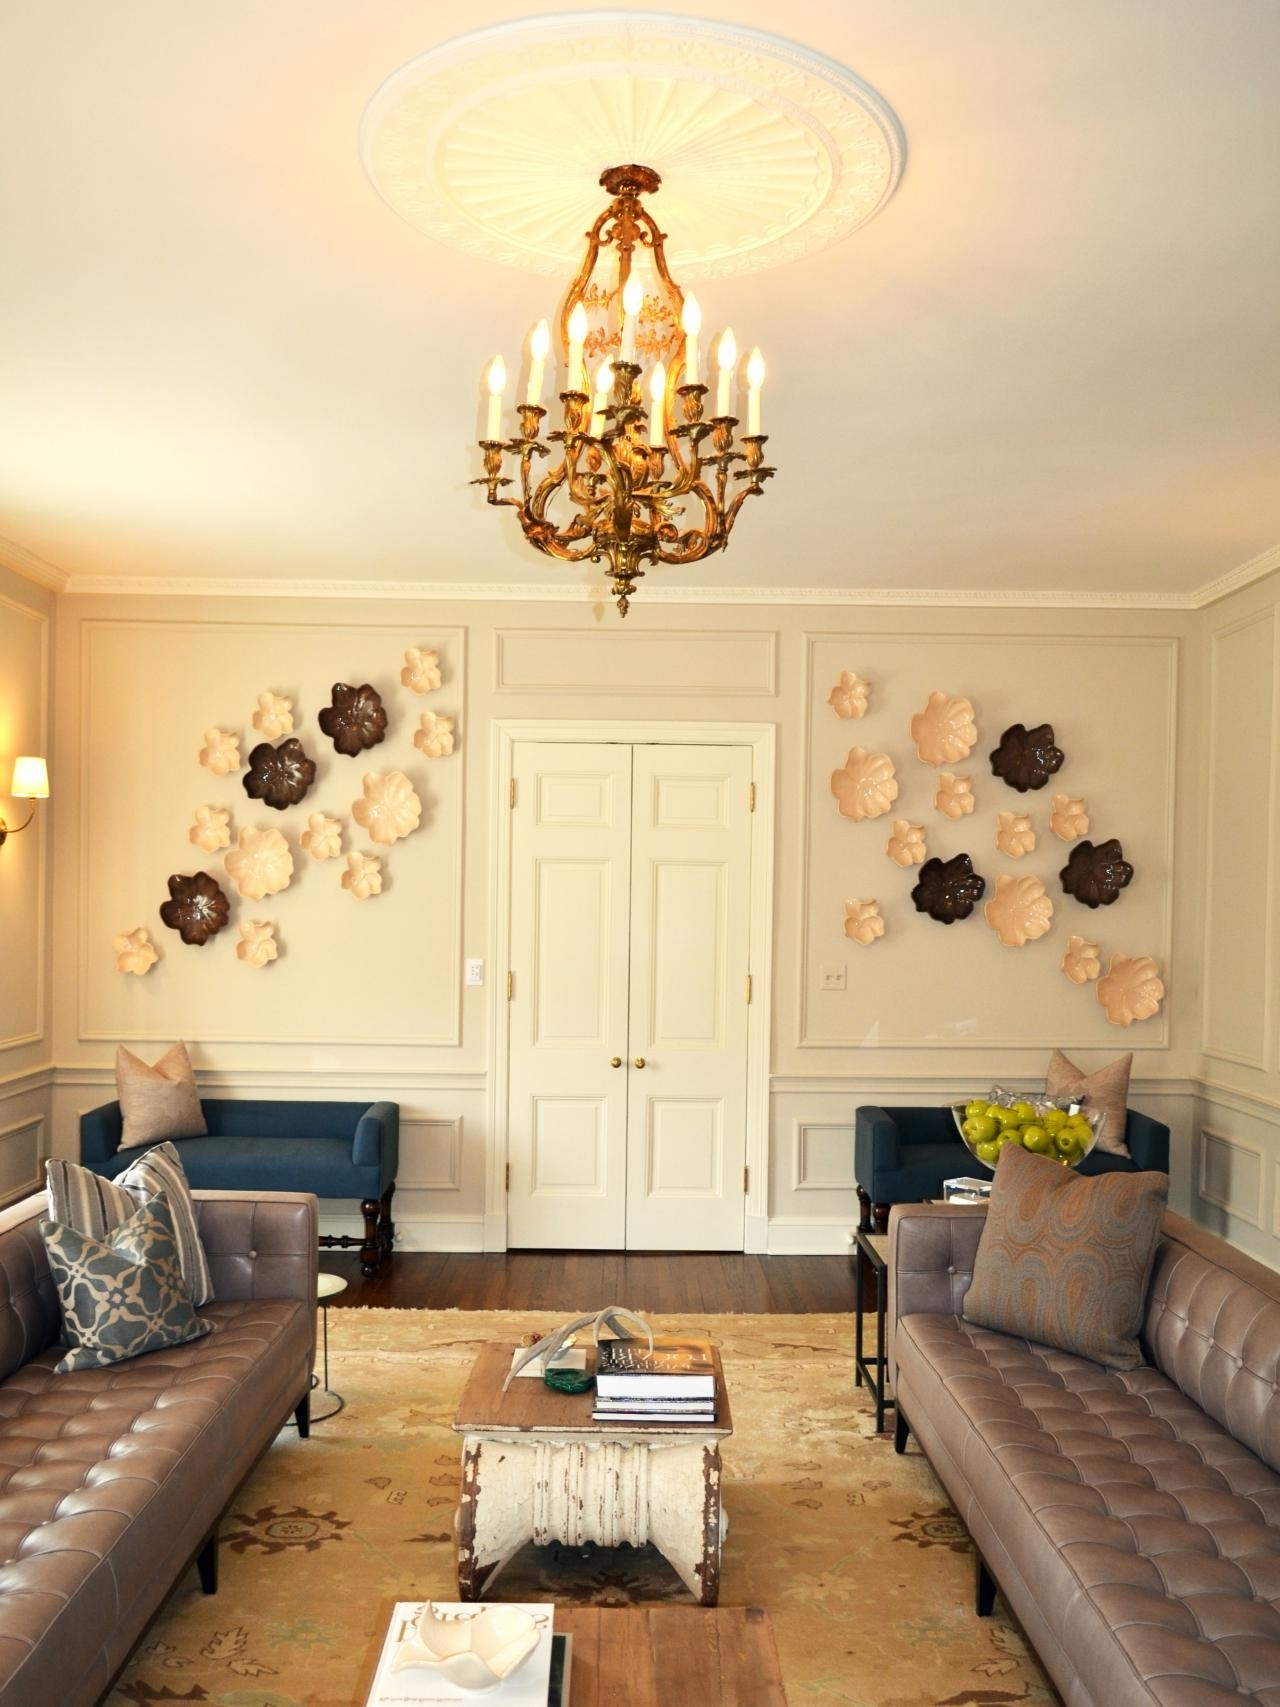 Famous Ceiling Medallion Wall Art With 42 Ceiling Medallion Wall Art, Fascinating 90 Ceiling Medallion Wall (View 10 of 15)